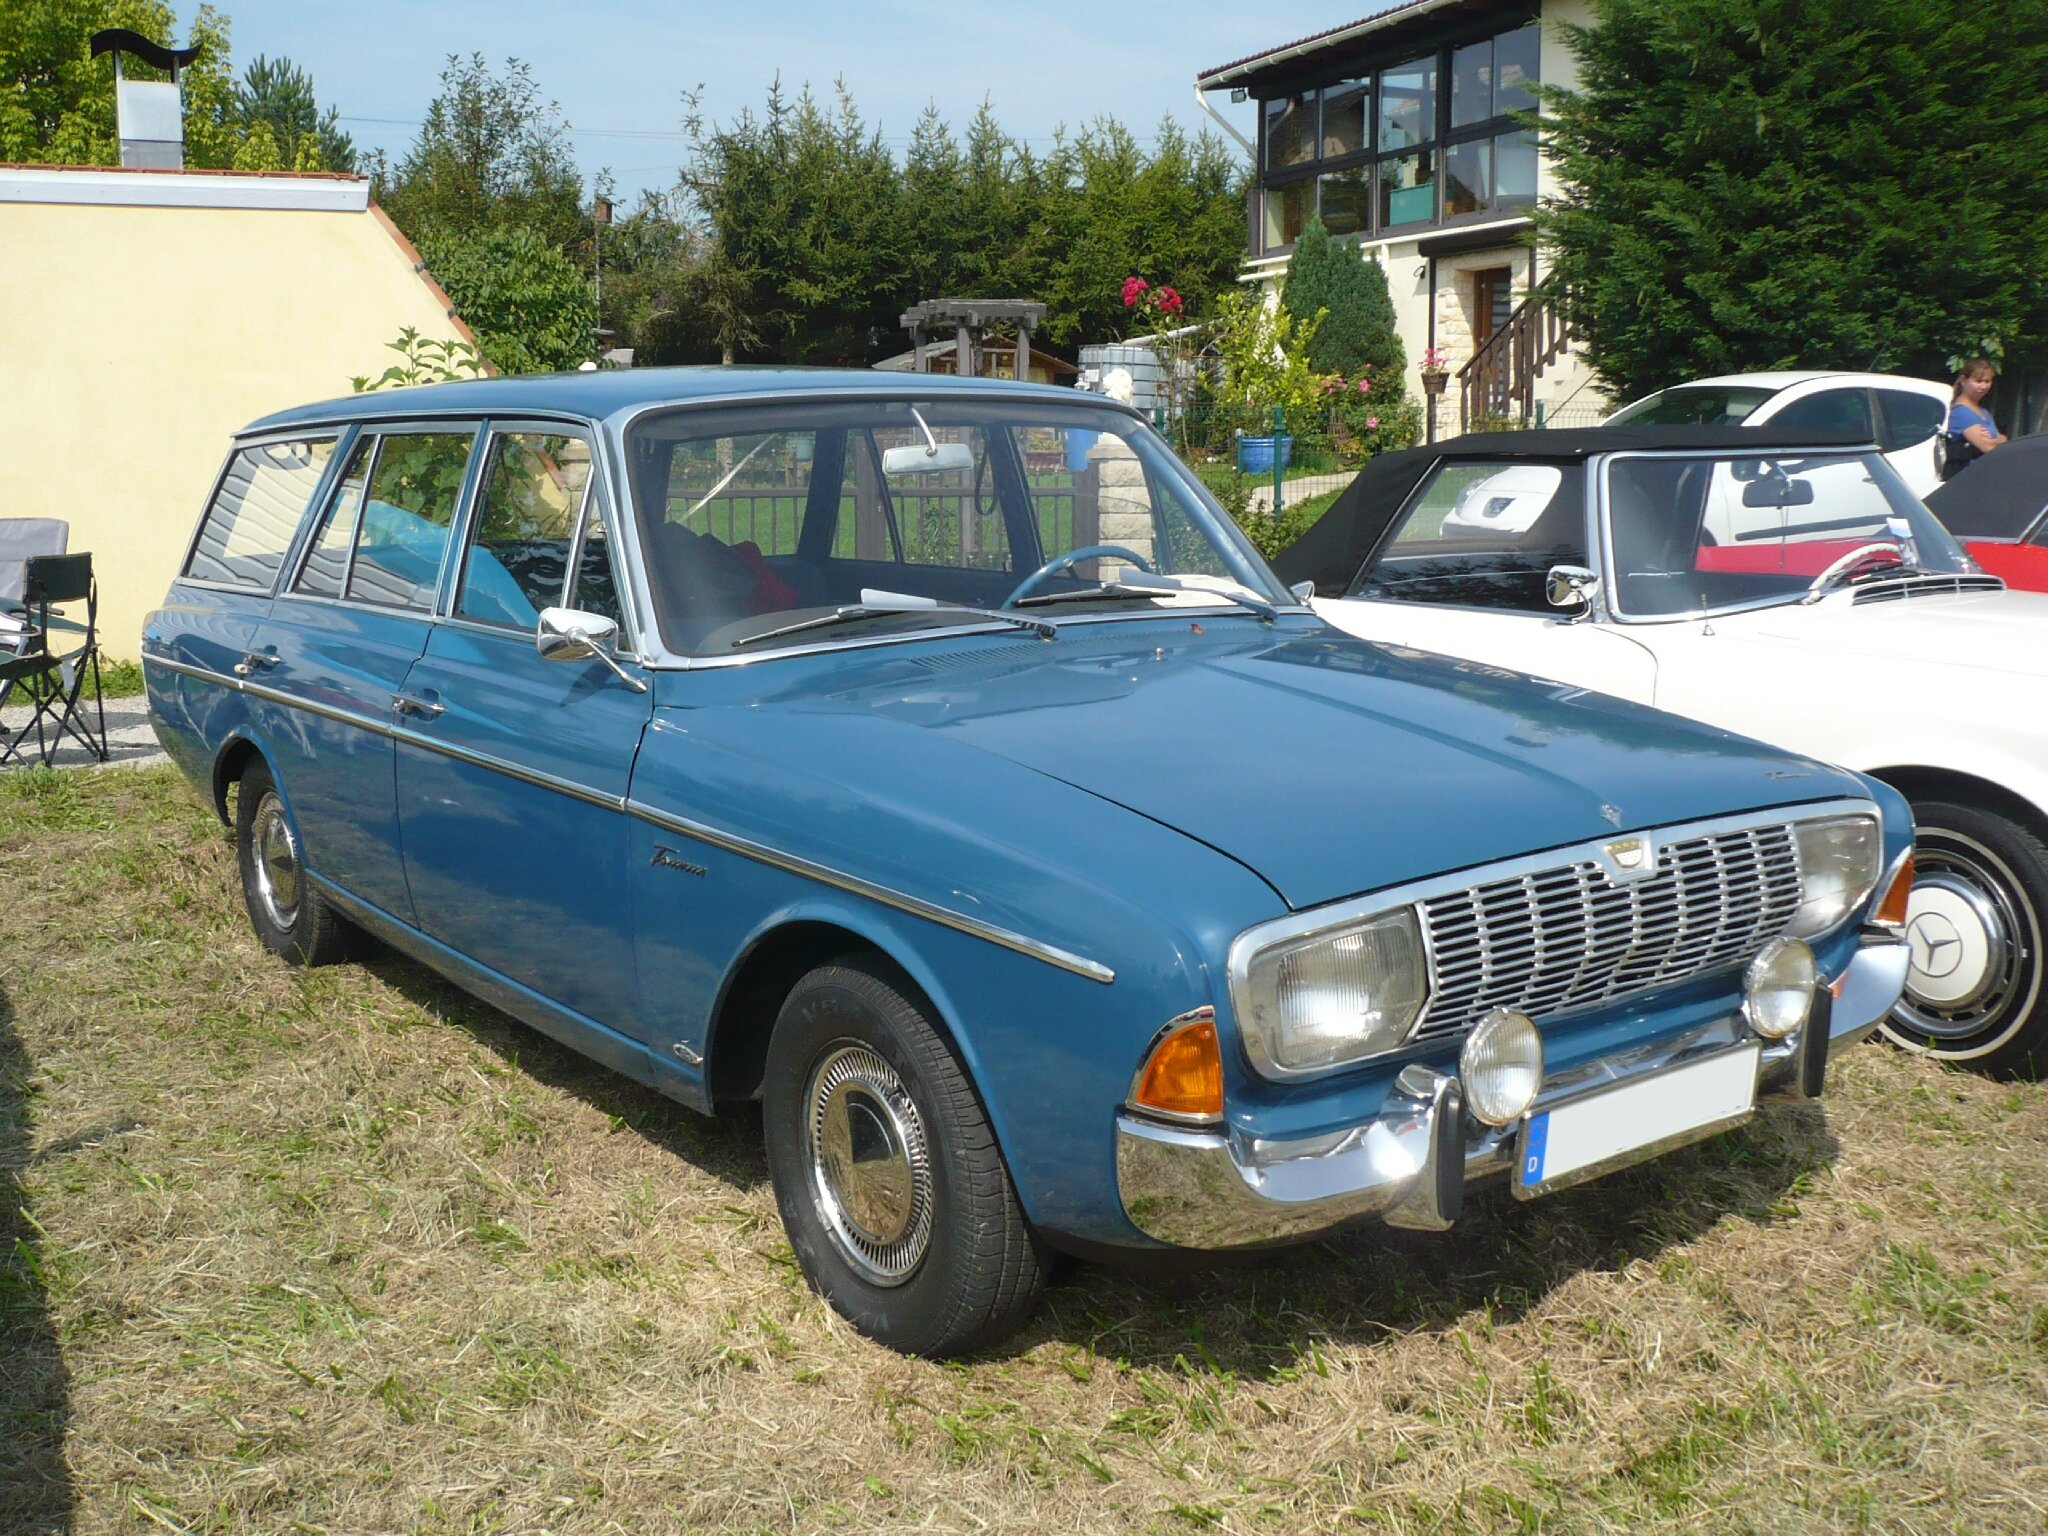 FORD Taunus 20m P5 Turnier break 5 portes 1966 Hambach (1)